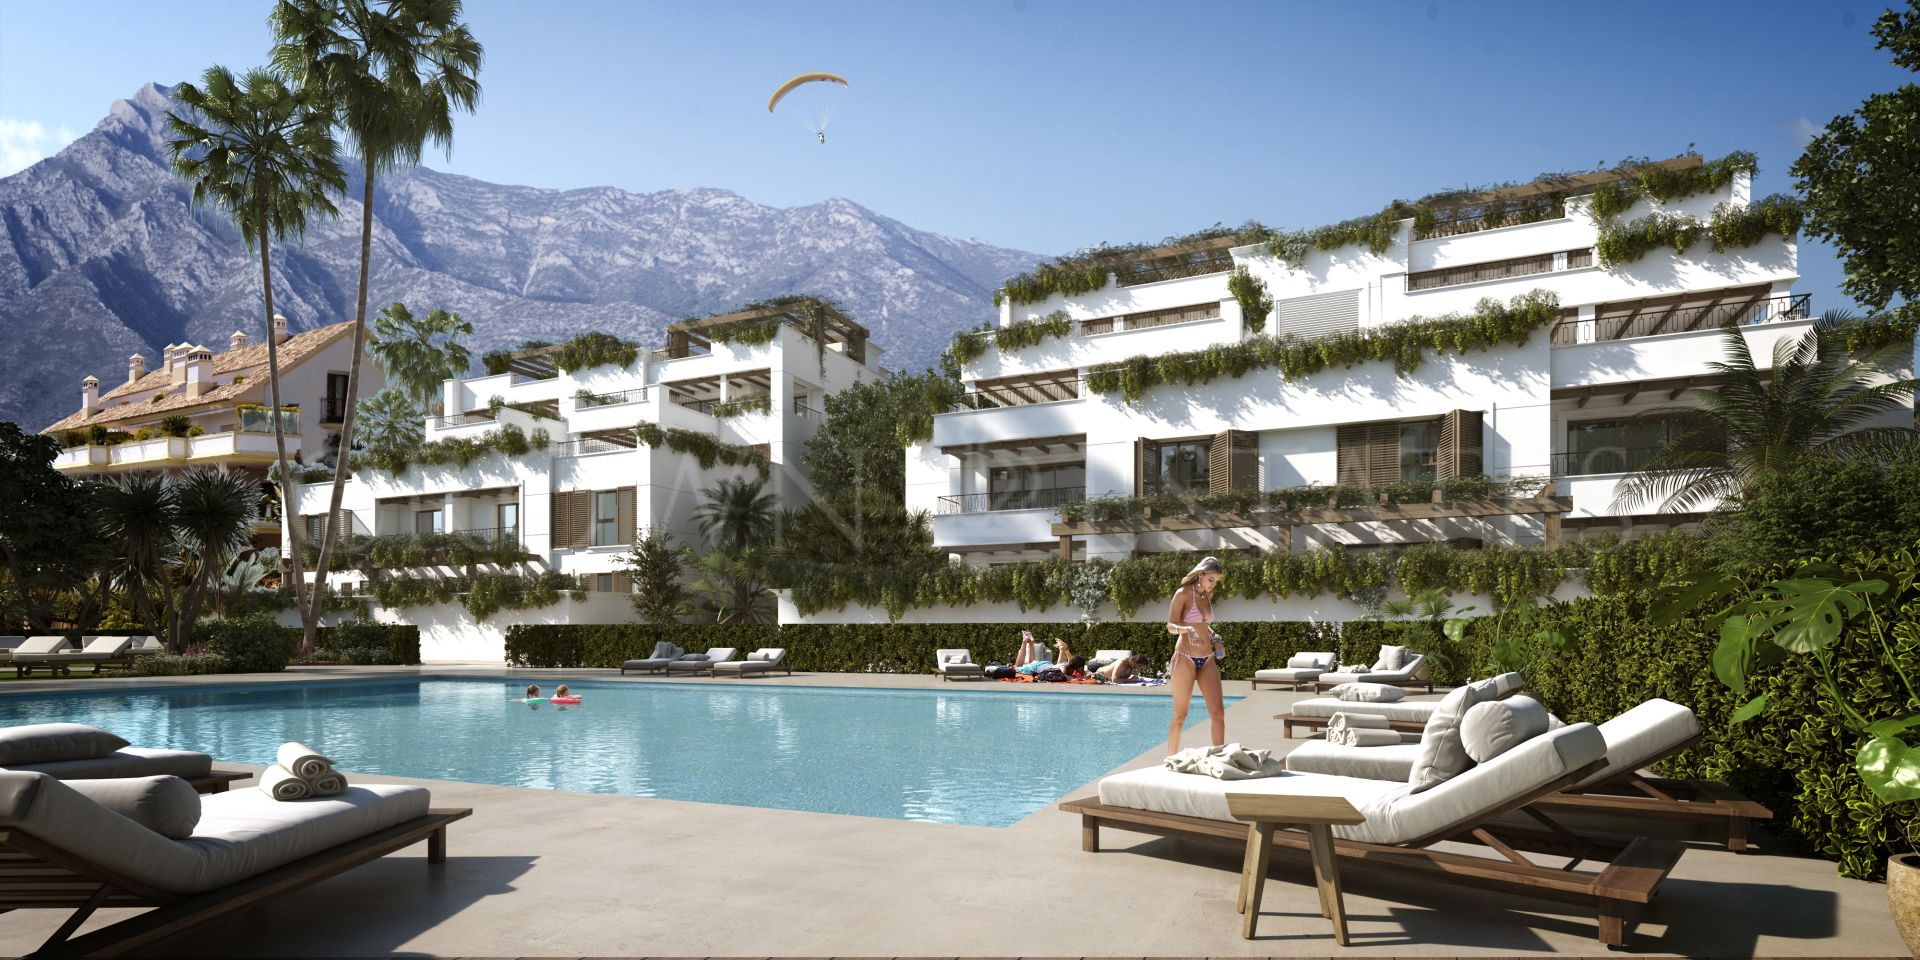 12 brand apartments in the new Phase D in Lomas del Rey